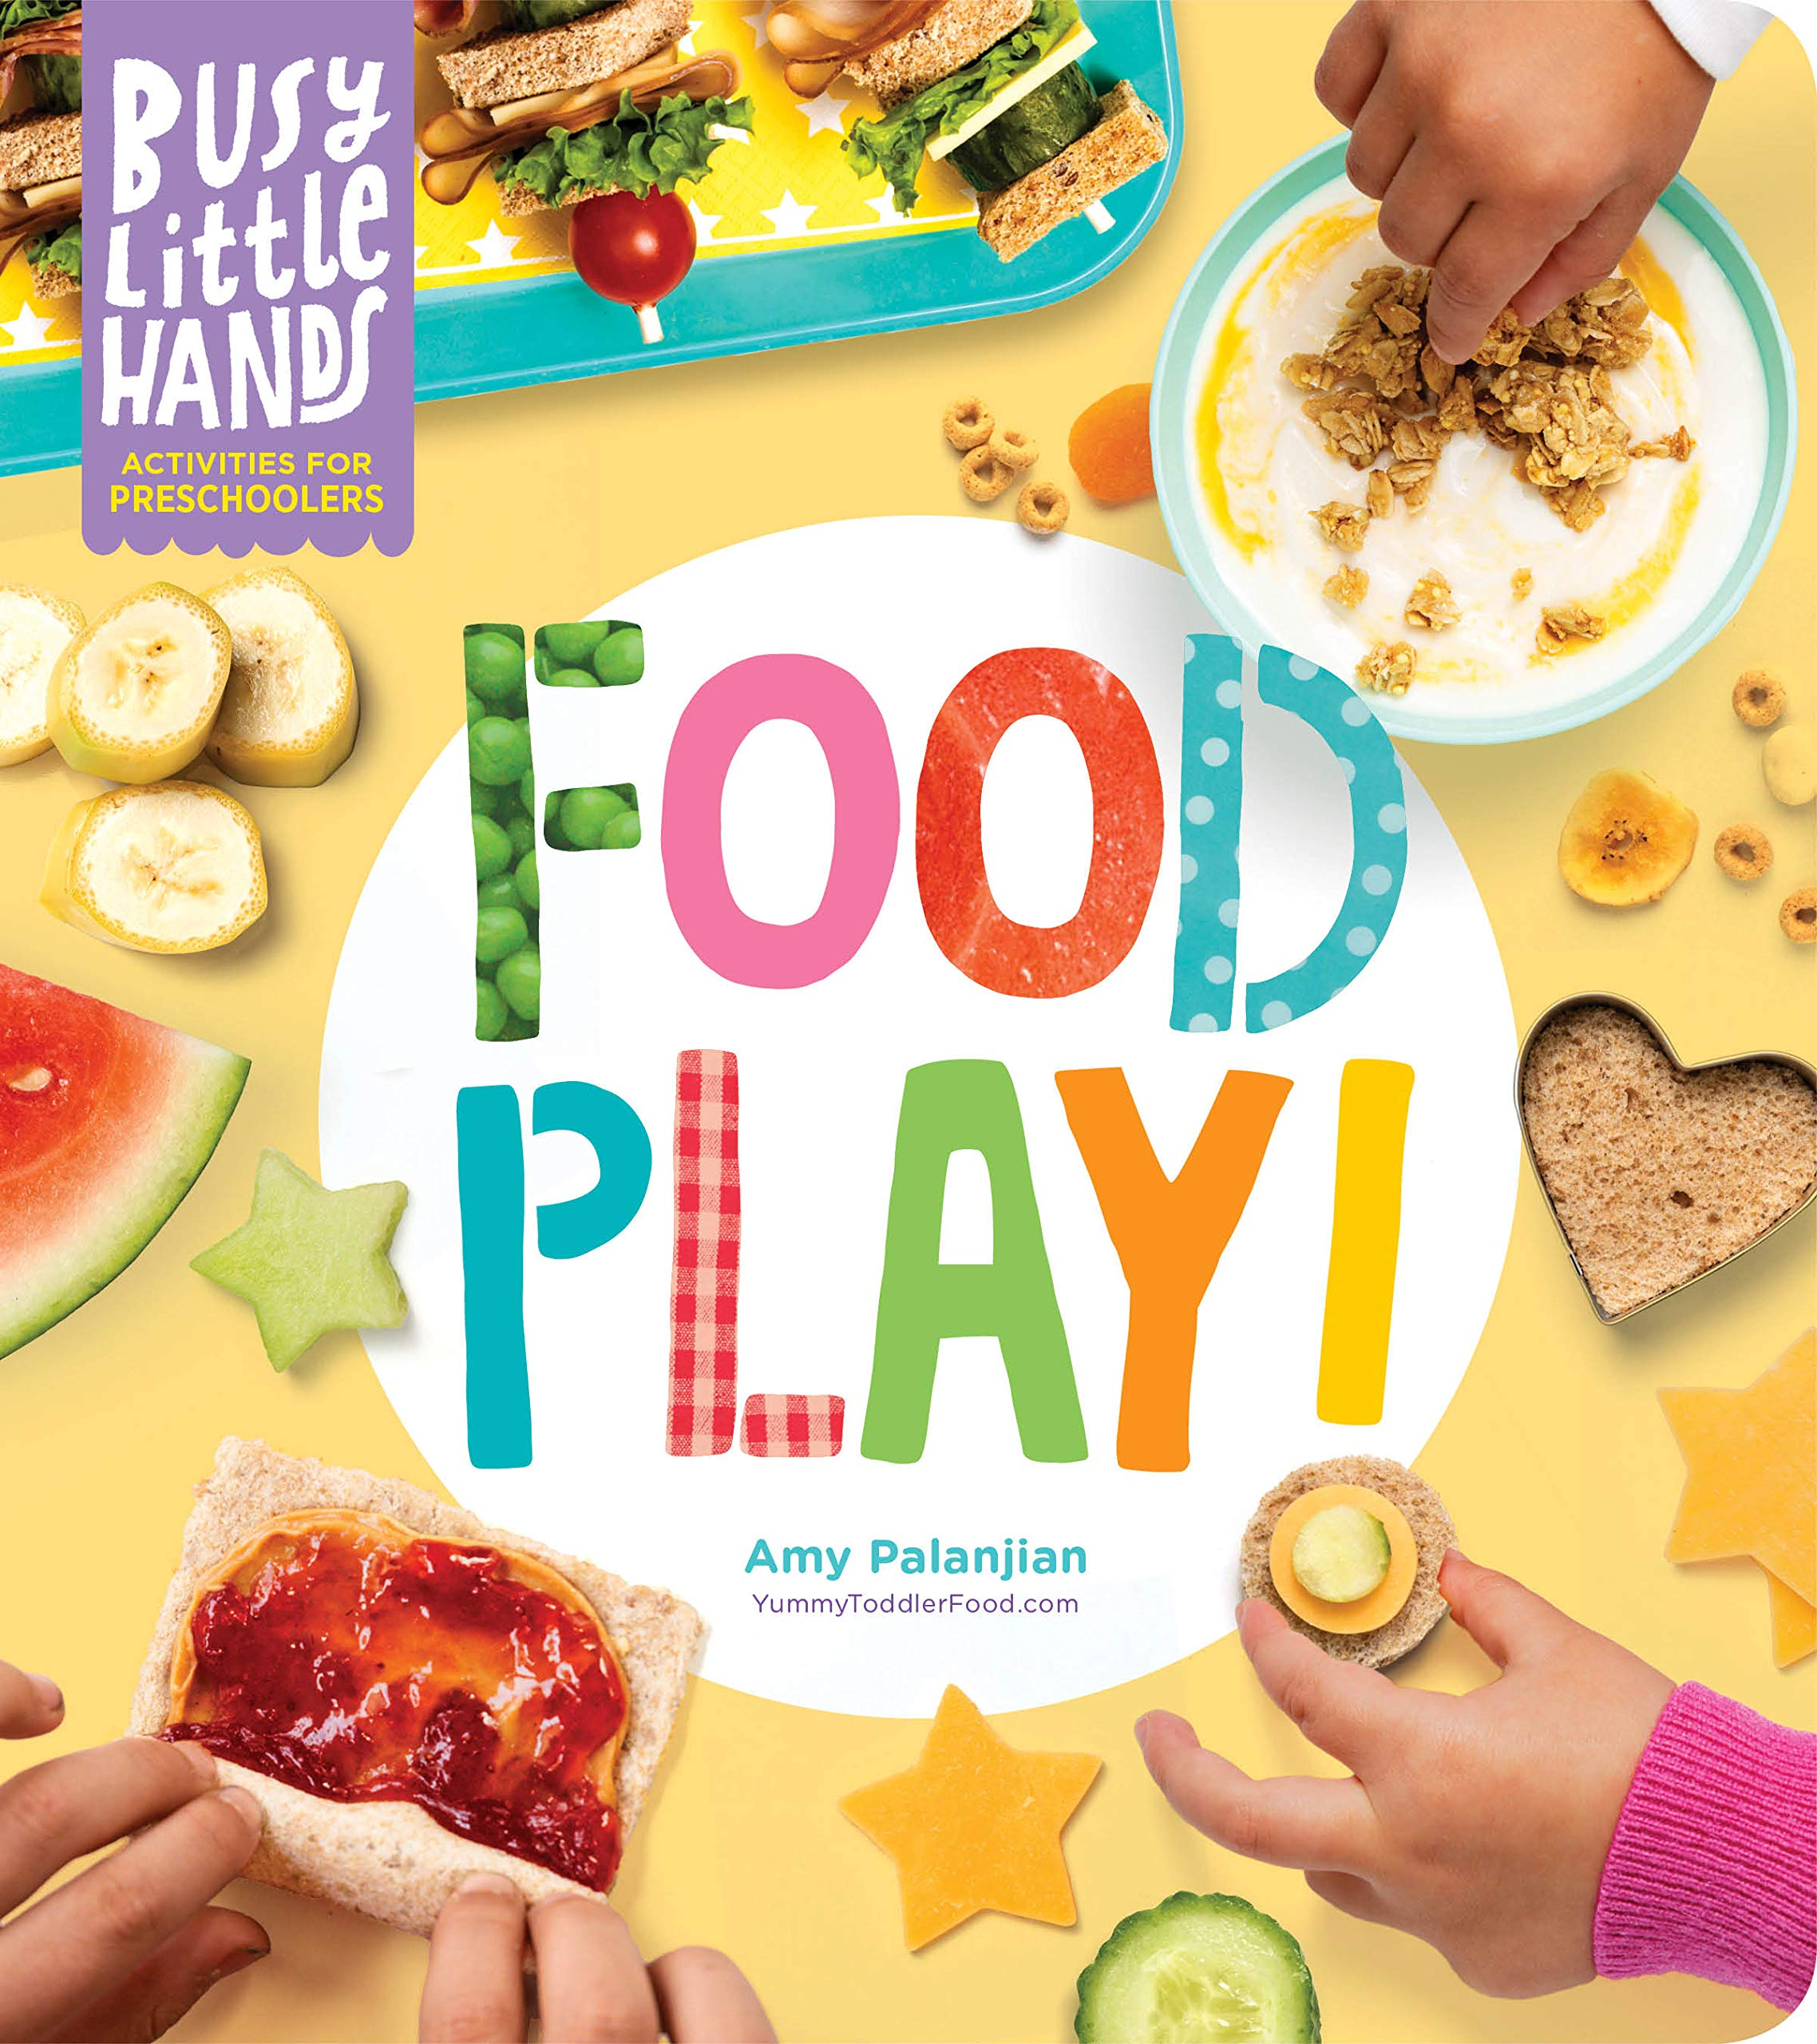 Busy Little Hands: Food Play!: Activities for Preschoolers